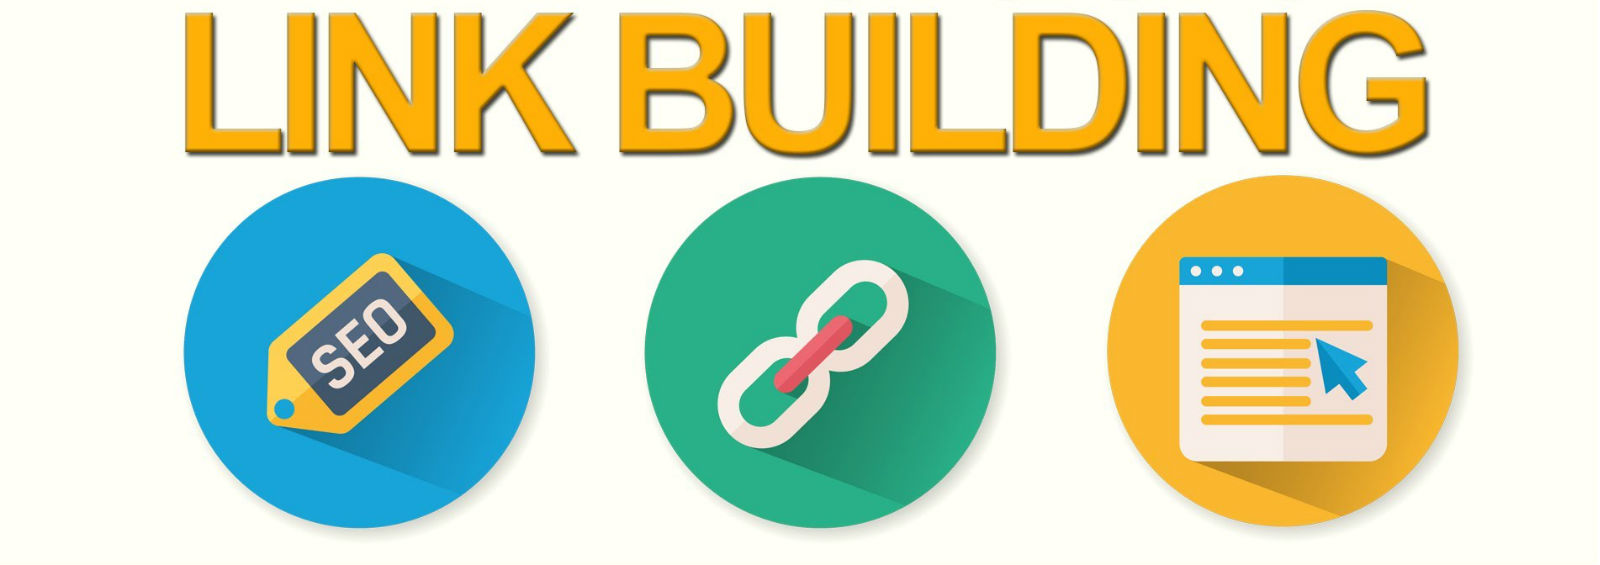 Create Link building strategy